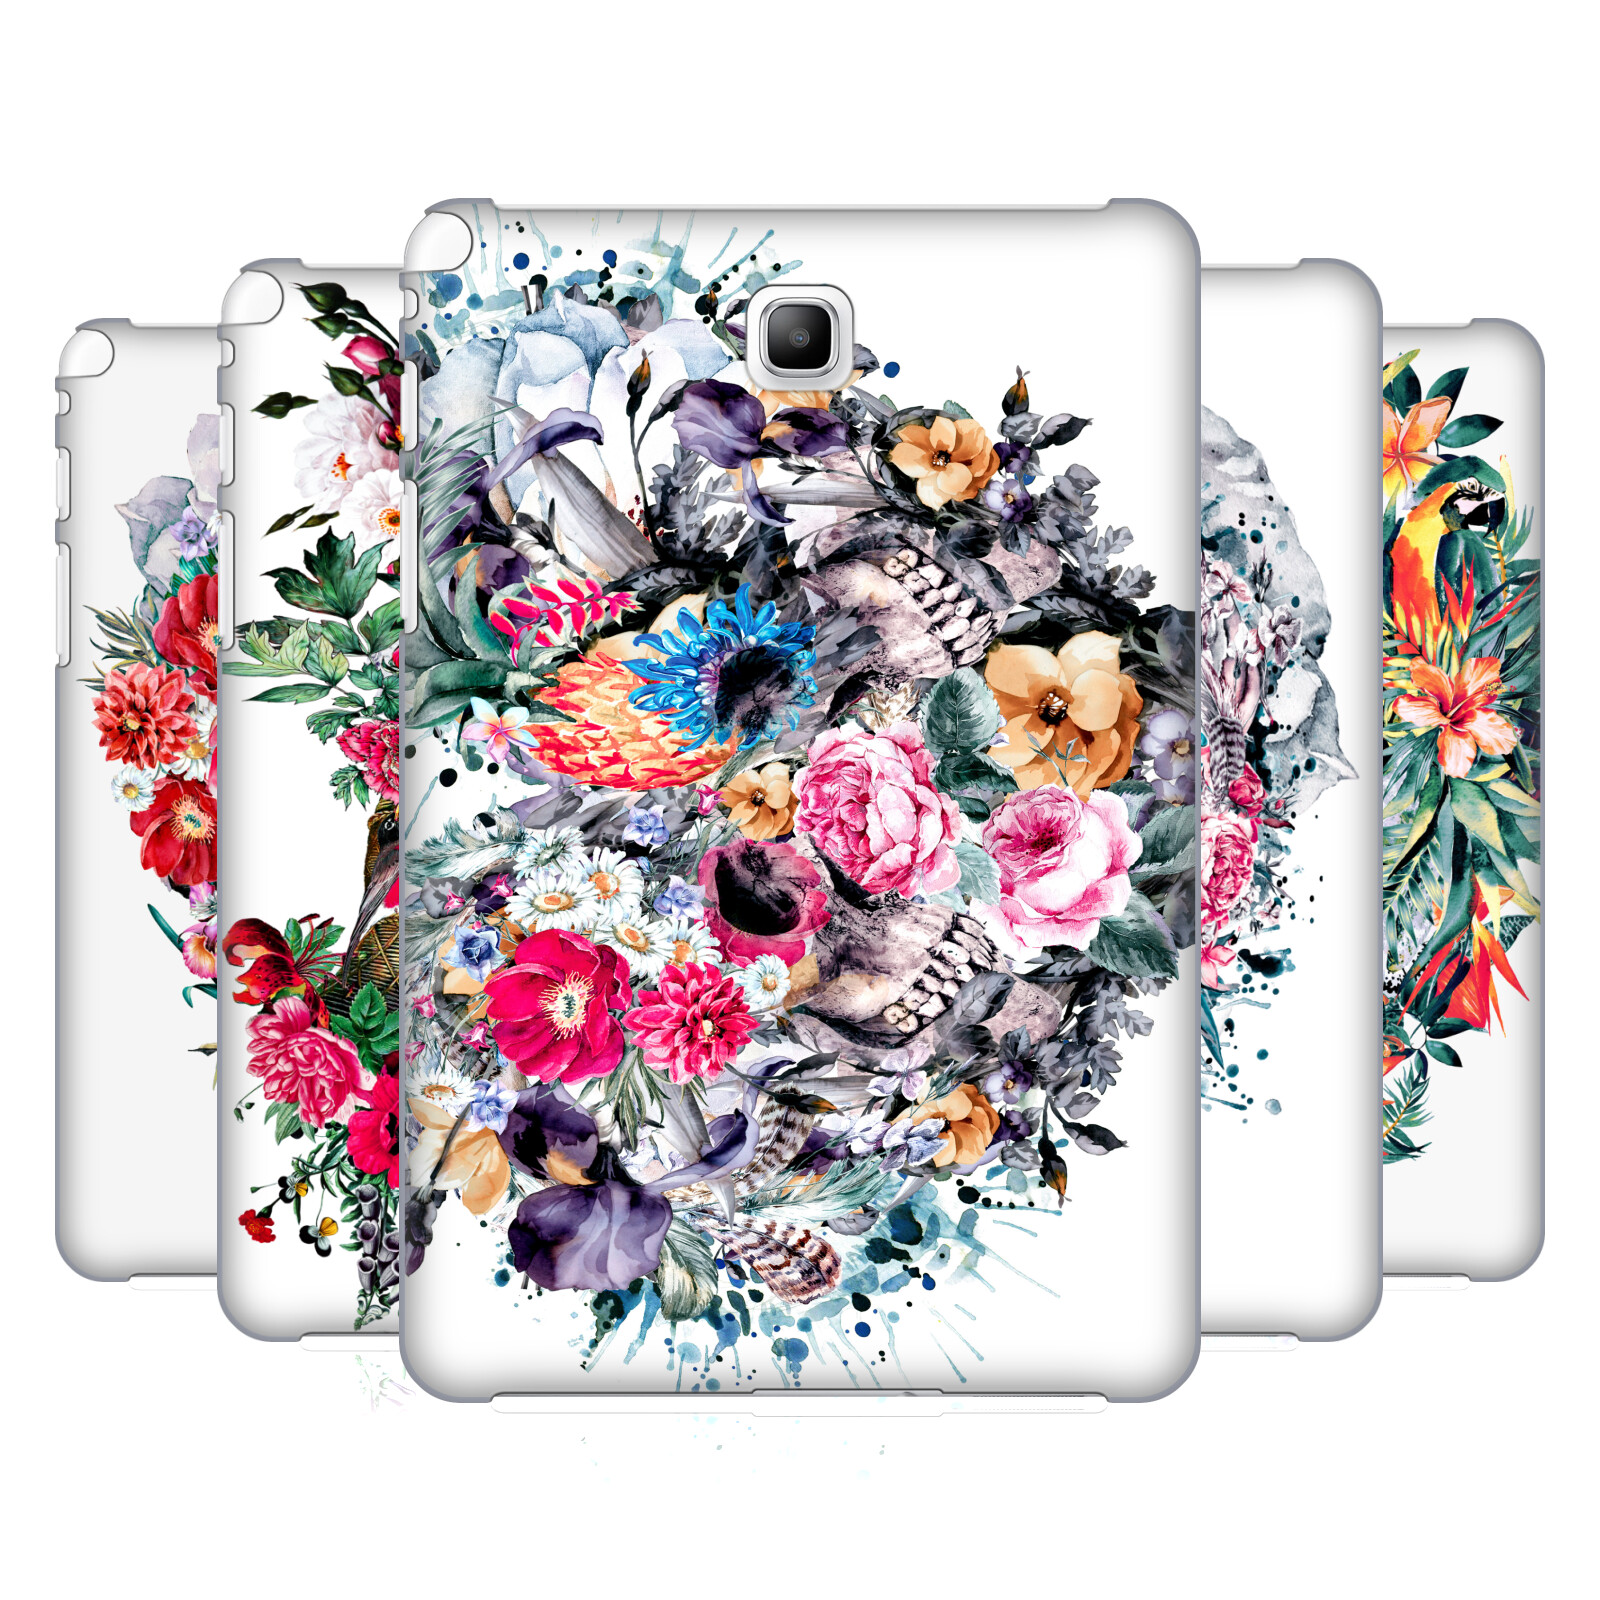 OFFICIAL RIZA PEKER SKULLS HARD BACK CASE FOR SAMSUNG TABLETS 1 - <span itemprop=availableAtOrFrom>Blackpool, Lancashire, United Kingdom</span> - You can return this item within 30 days of receipt if you are not satisfied with it.Prior to any return, please get in contact with us via e-mail, live chat or telephone. Th - Blackpool, Lancashire, United Kingdom